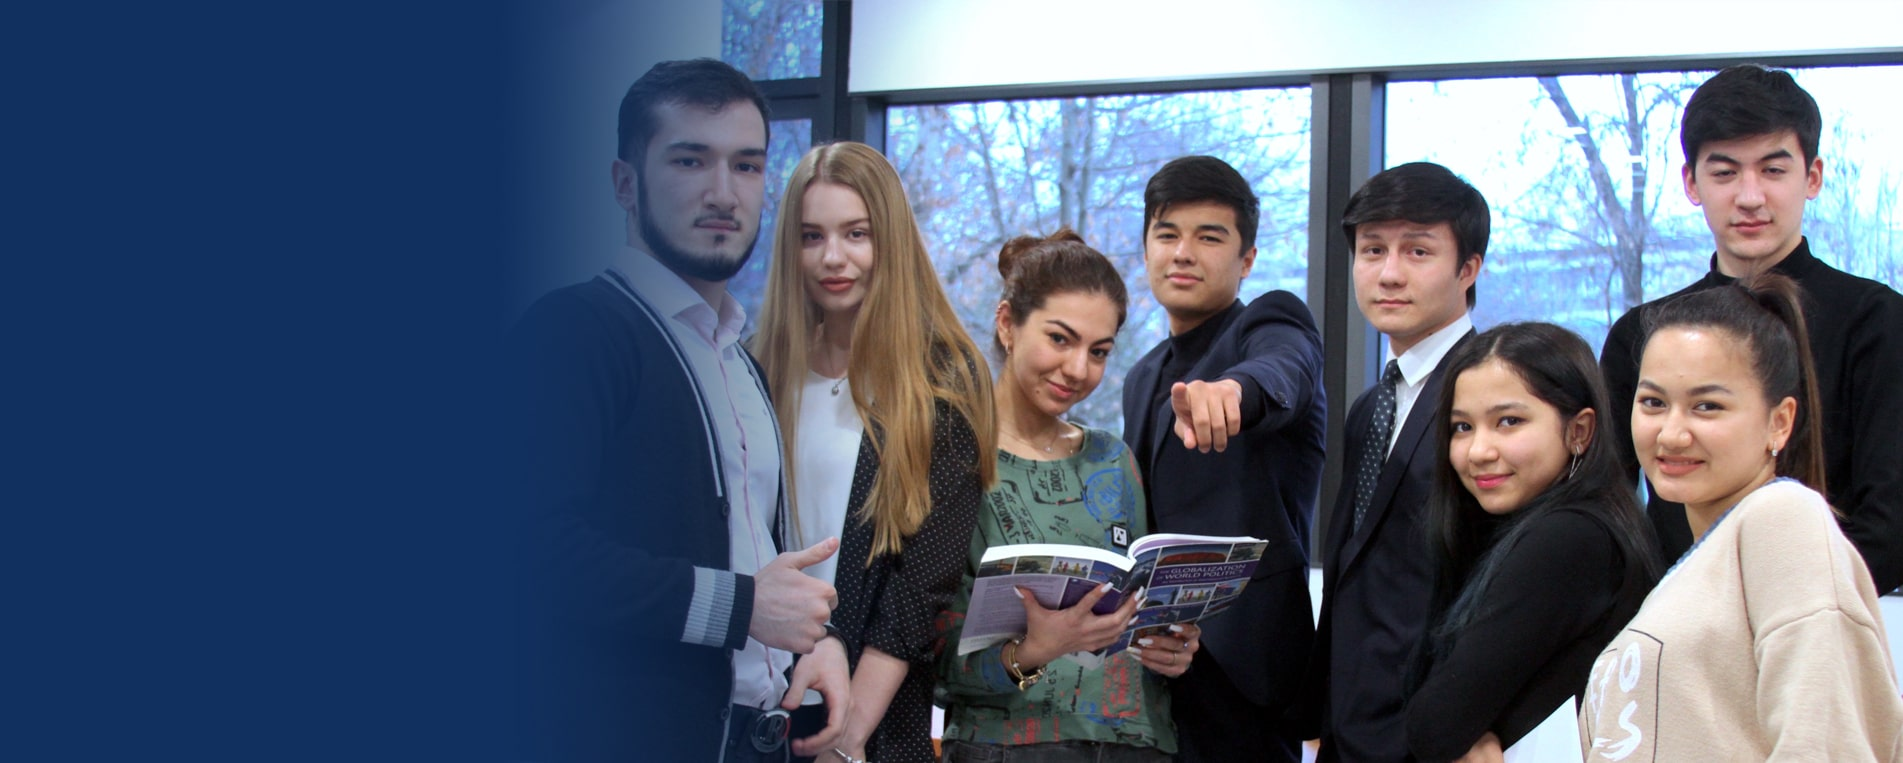 London Graduate School of Business - LGSB Uzbekistan Tashkent UK Education University